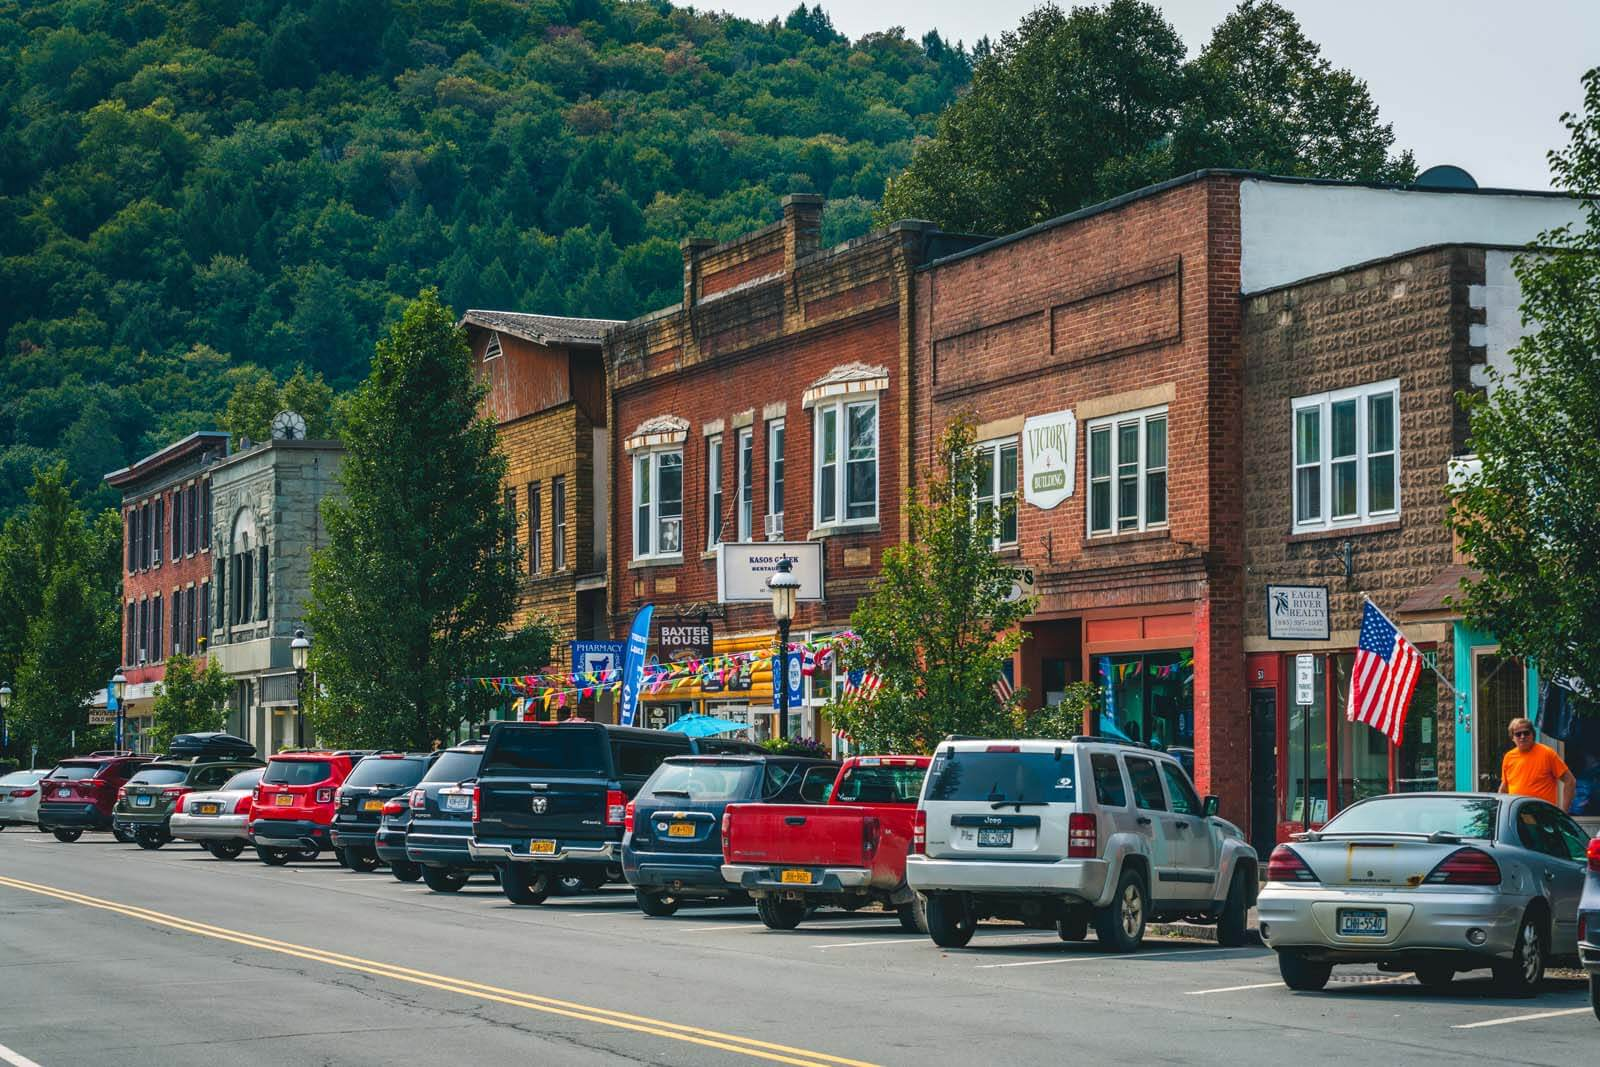 Town of Roscoe in the Catskills New York